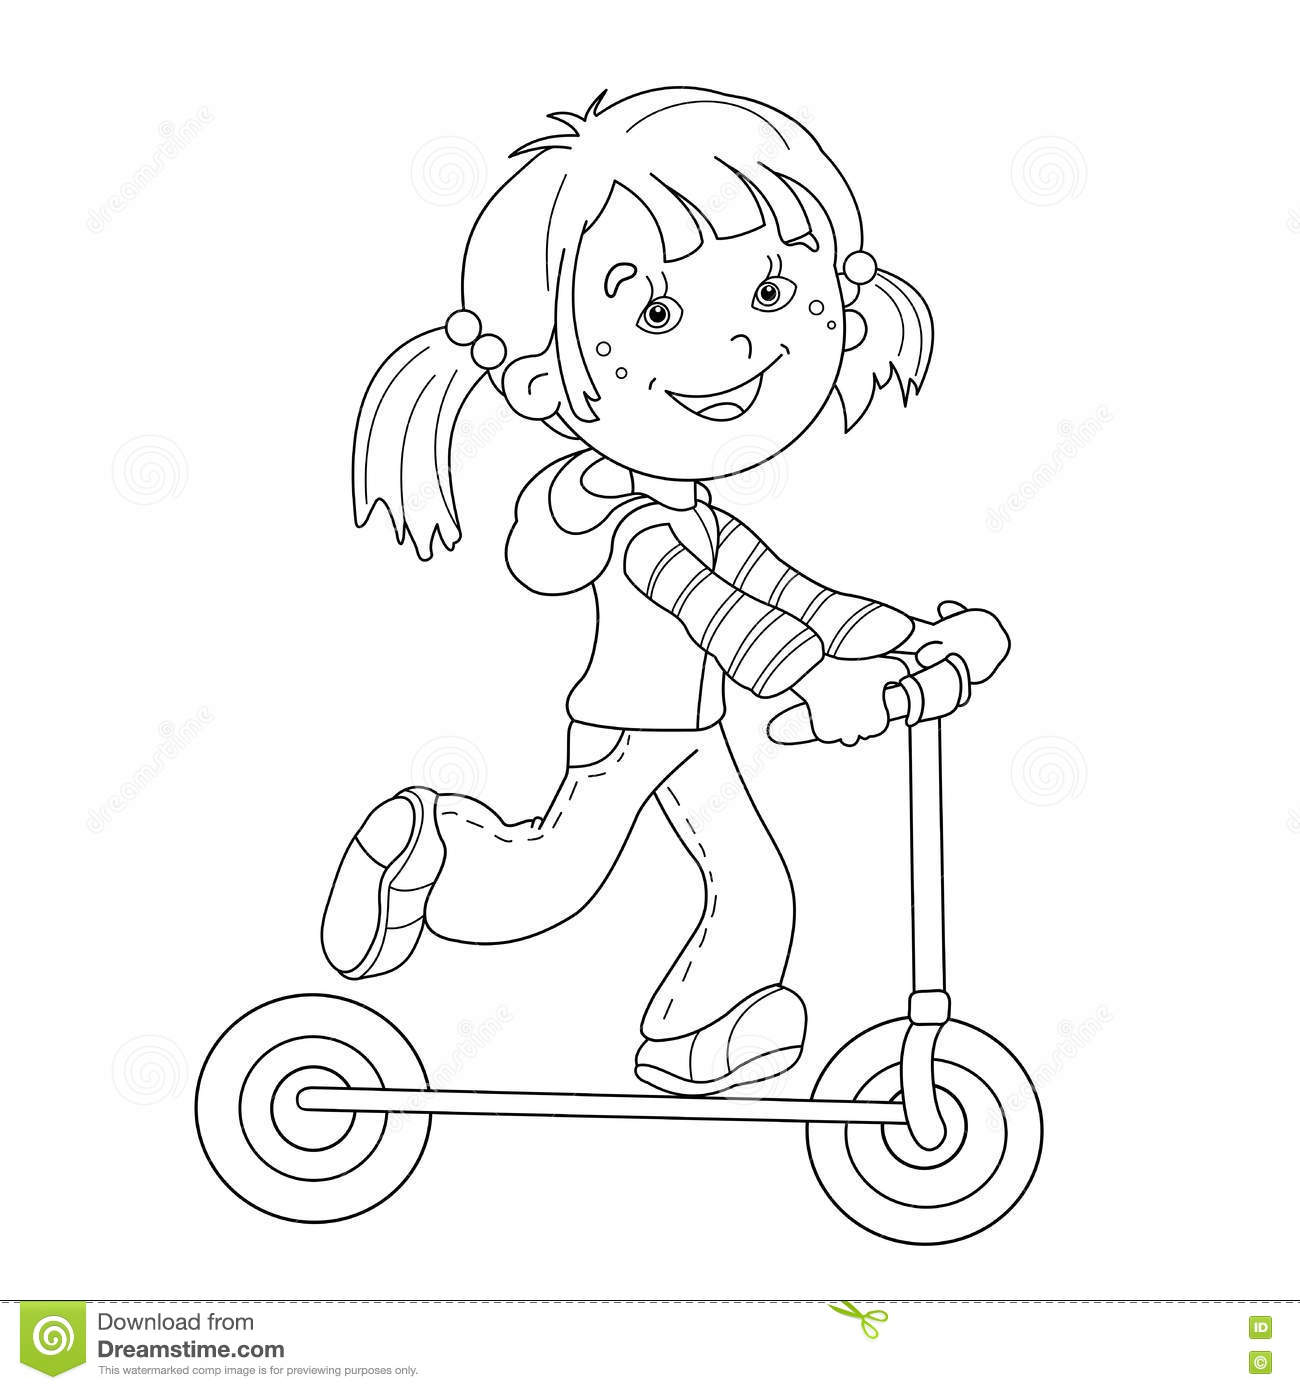 coloring page outline of cartoon girl on the scooter